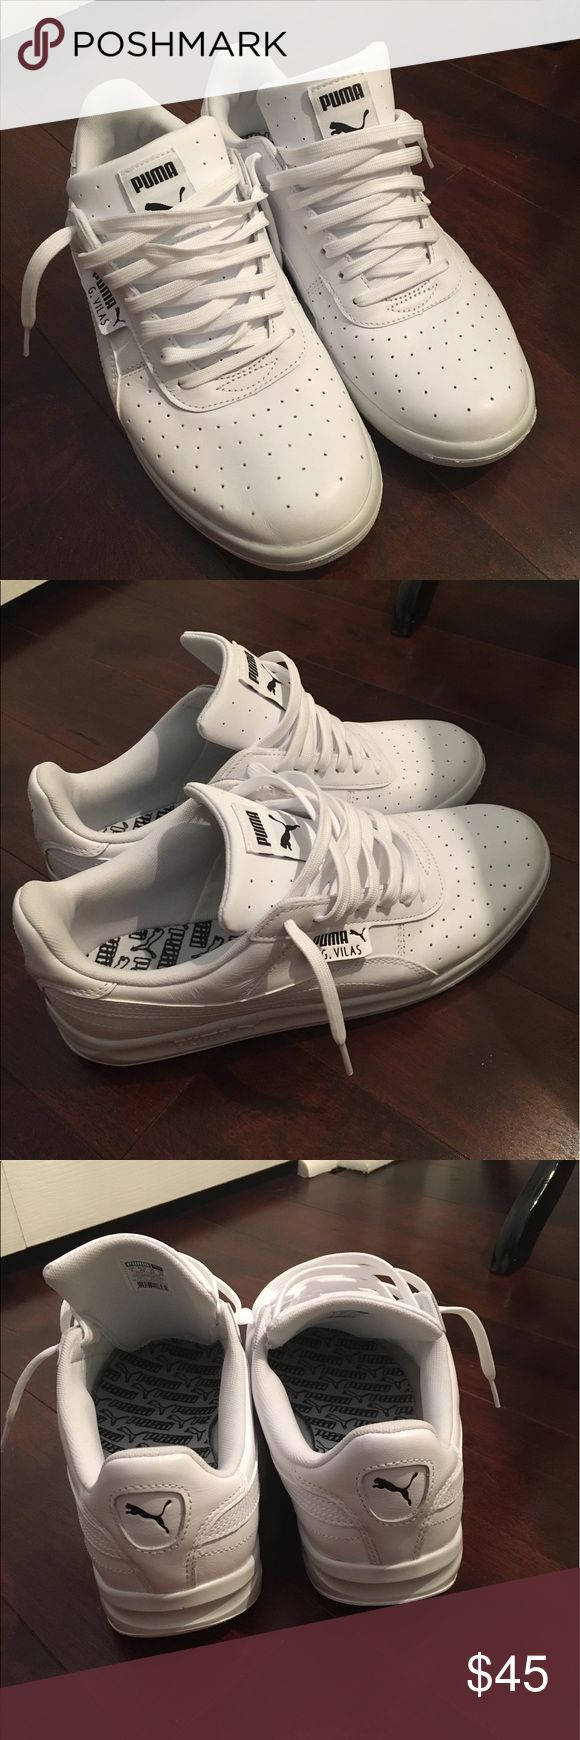 Men's Puma tennis shoes 👟 Puma- White- G.Vilas L2- Worn once- excellent condition-Size 10 (too small for hubby)- NO BOX 👟 Puma Shoes Sneakers